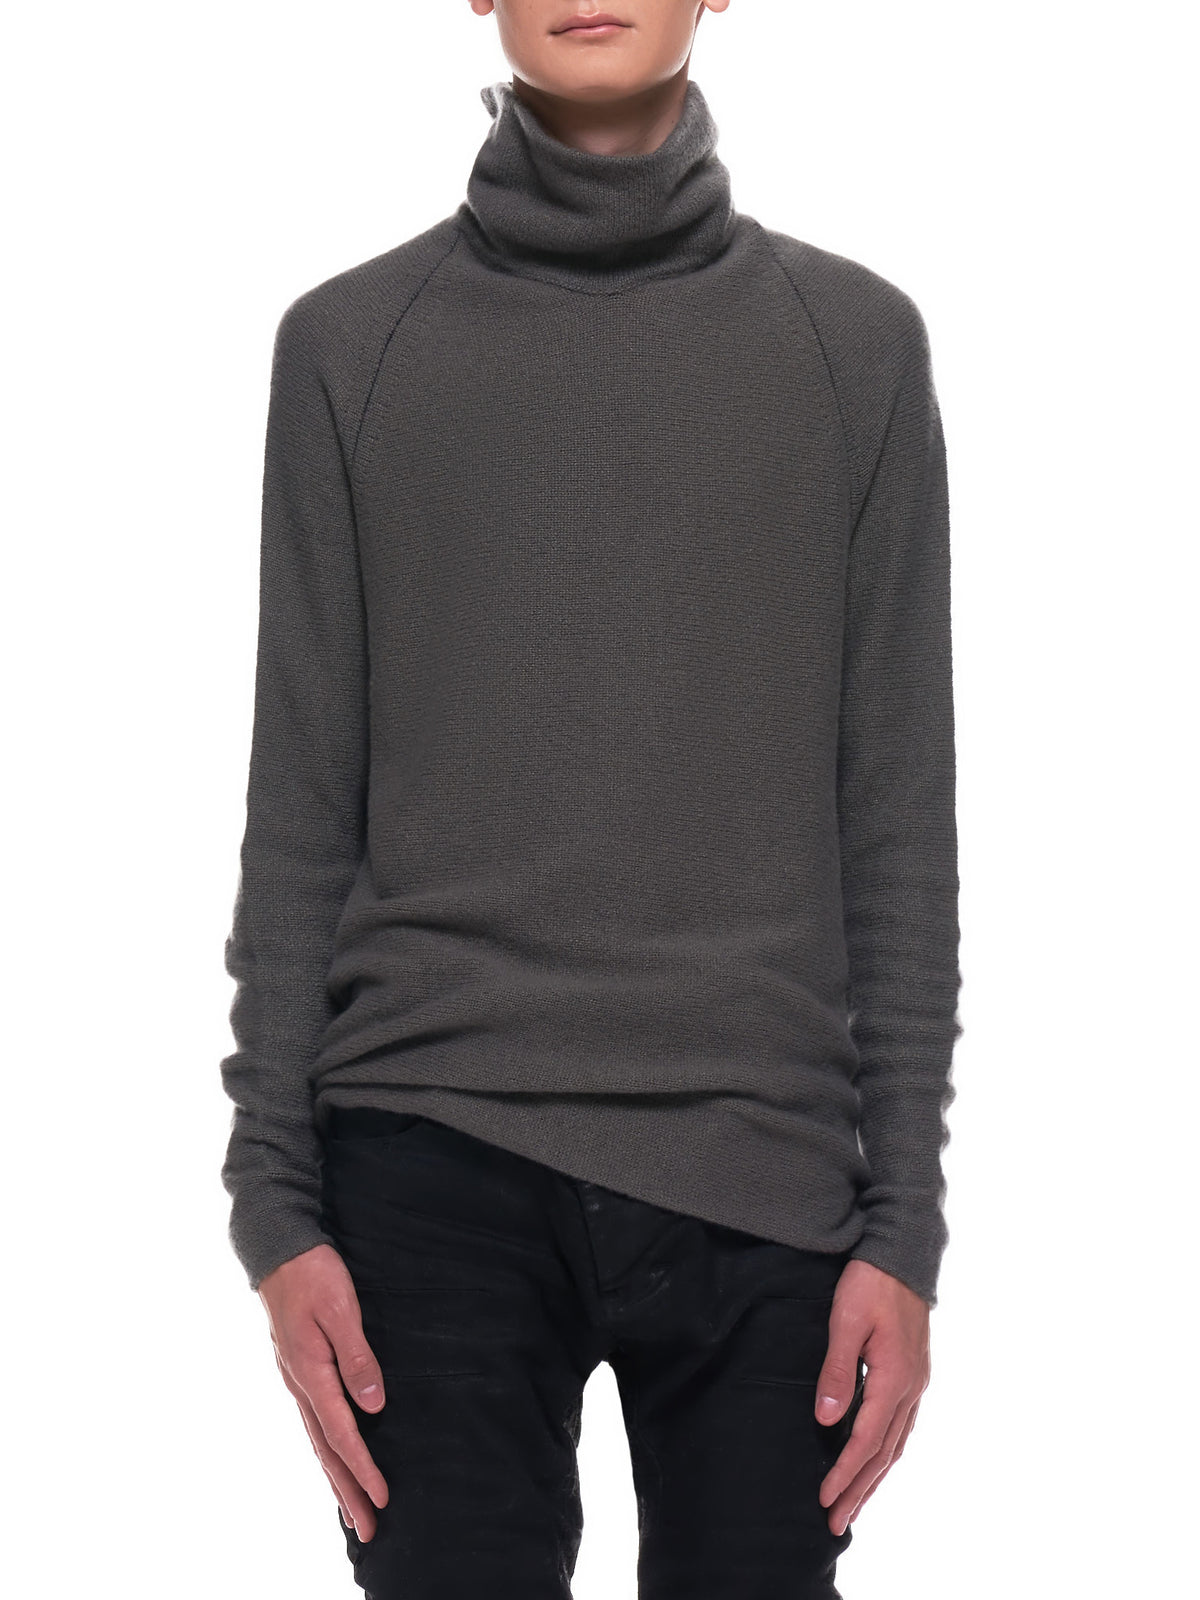 Flat Seam Hi Neck Sweater (36YMSW259-WS90-KHAKI-BLACK)